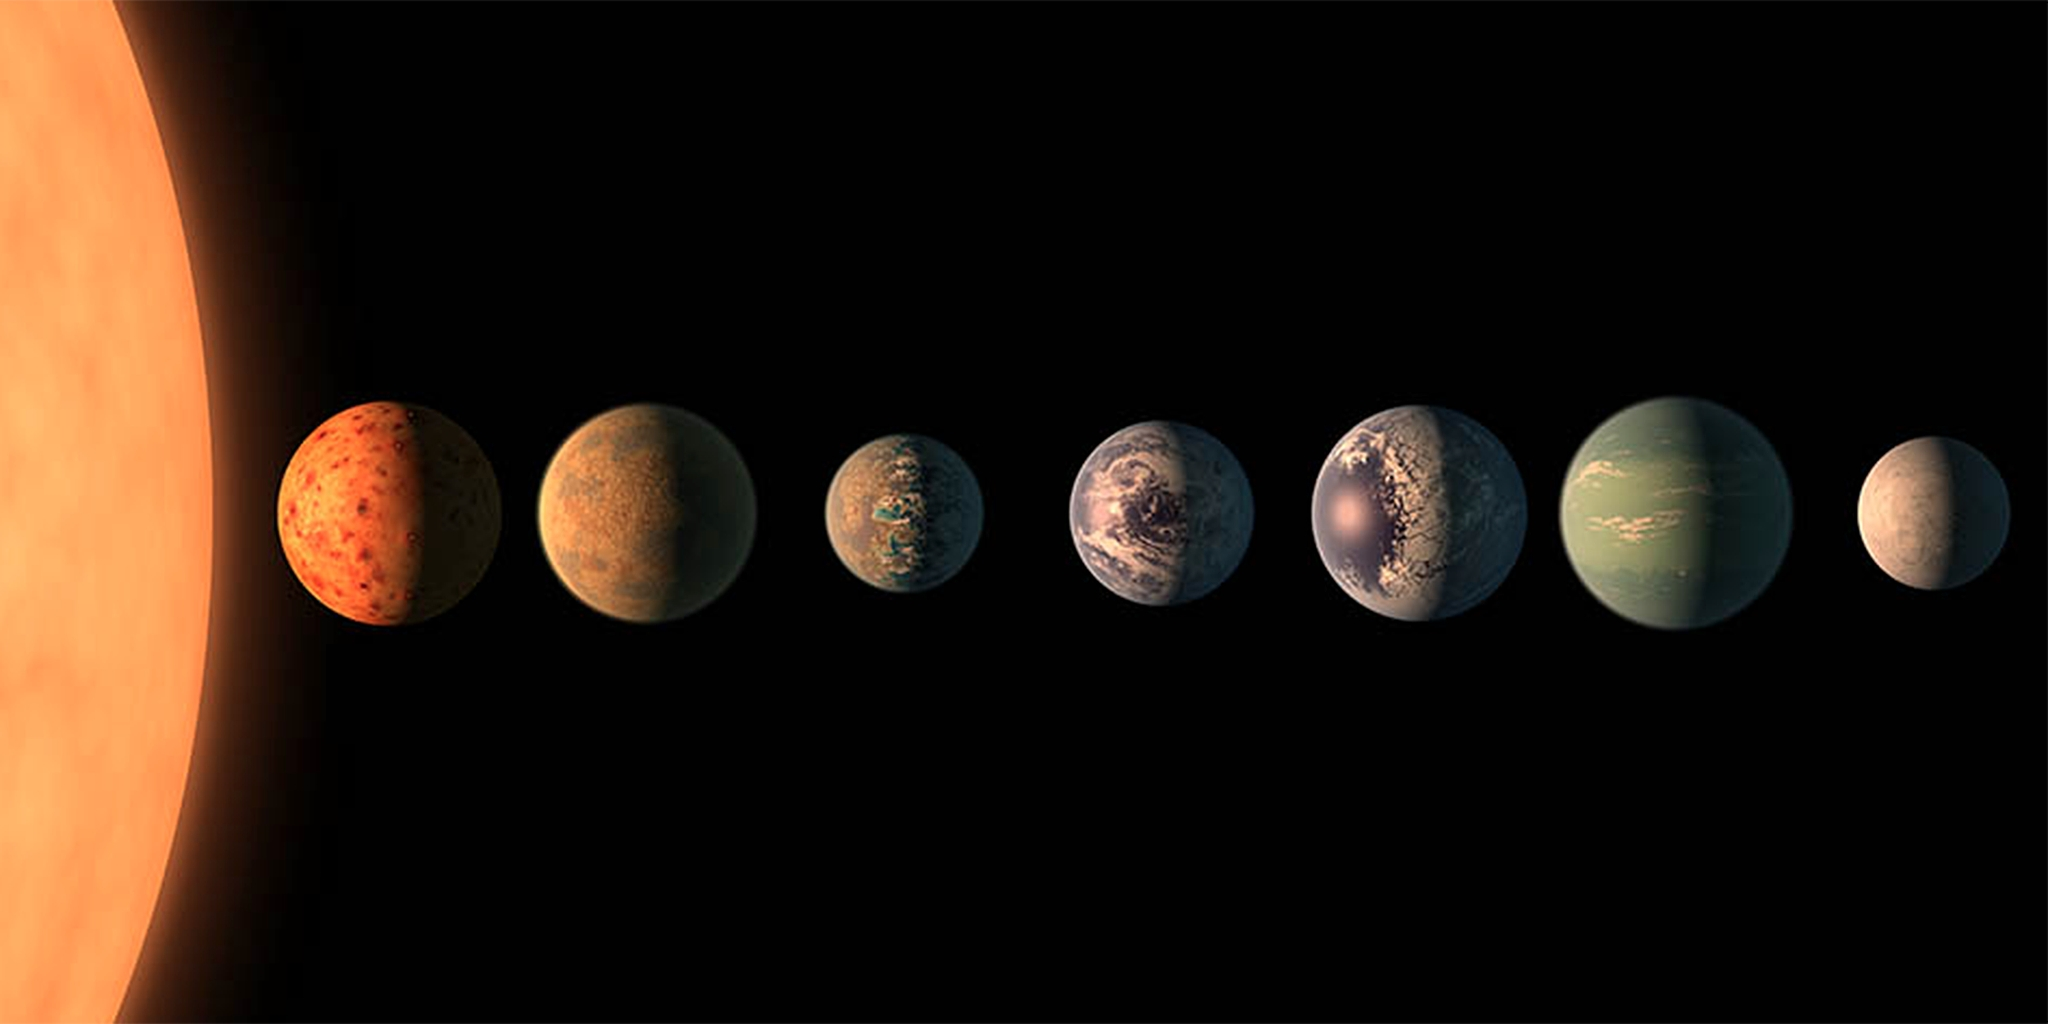 Trappist exoplanets